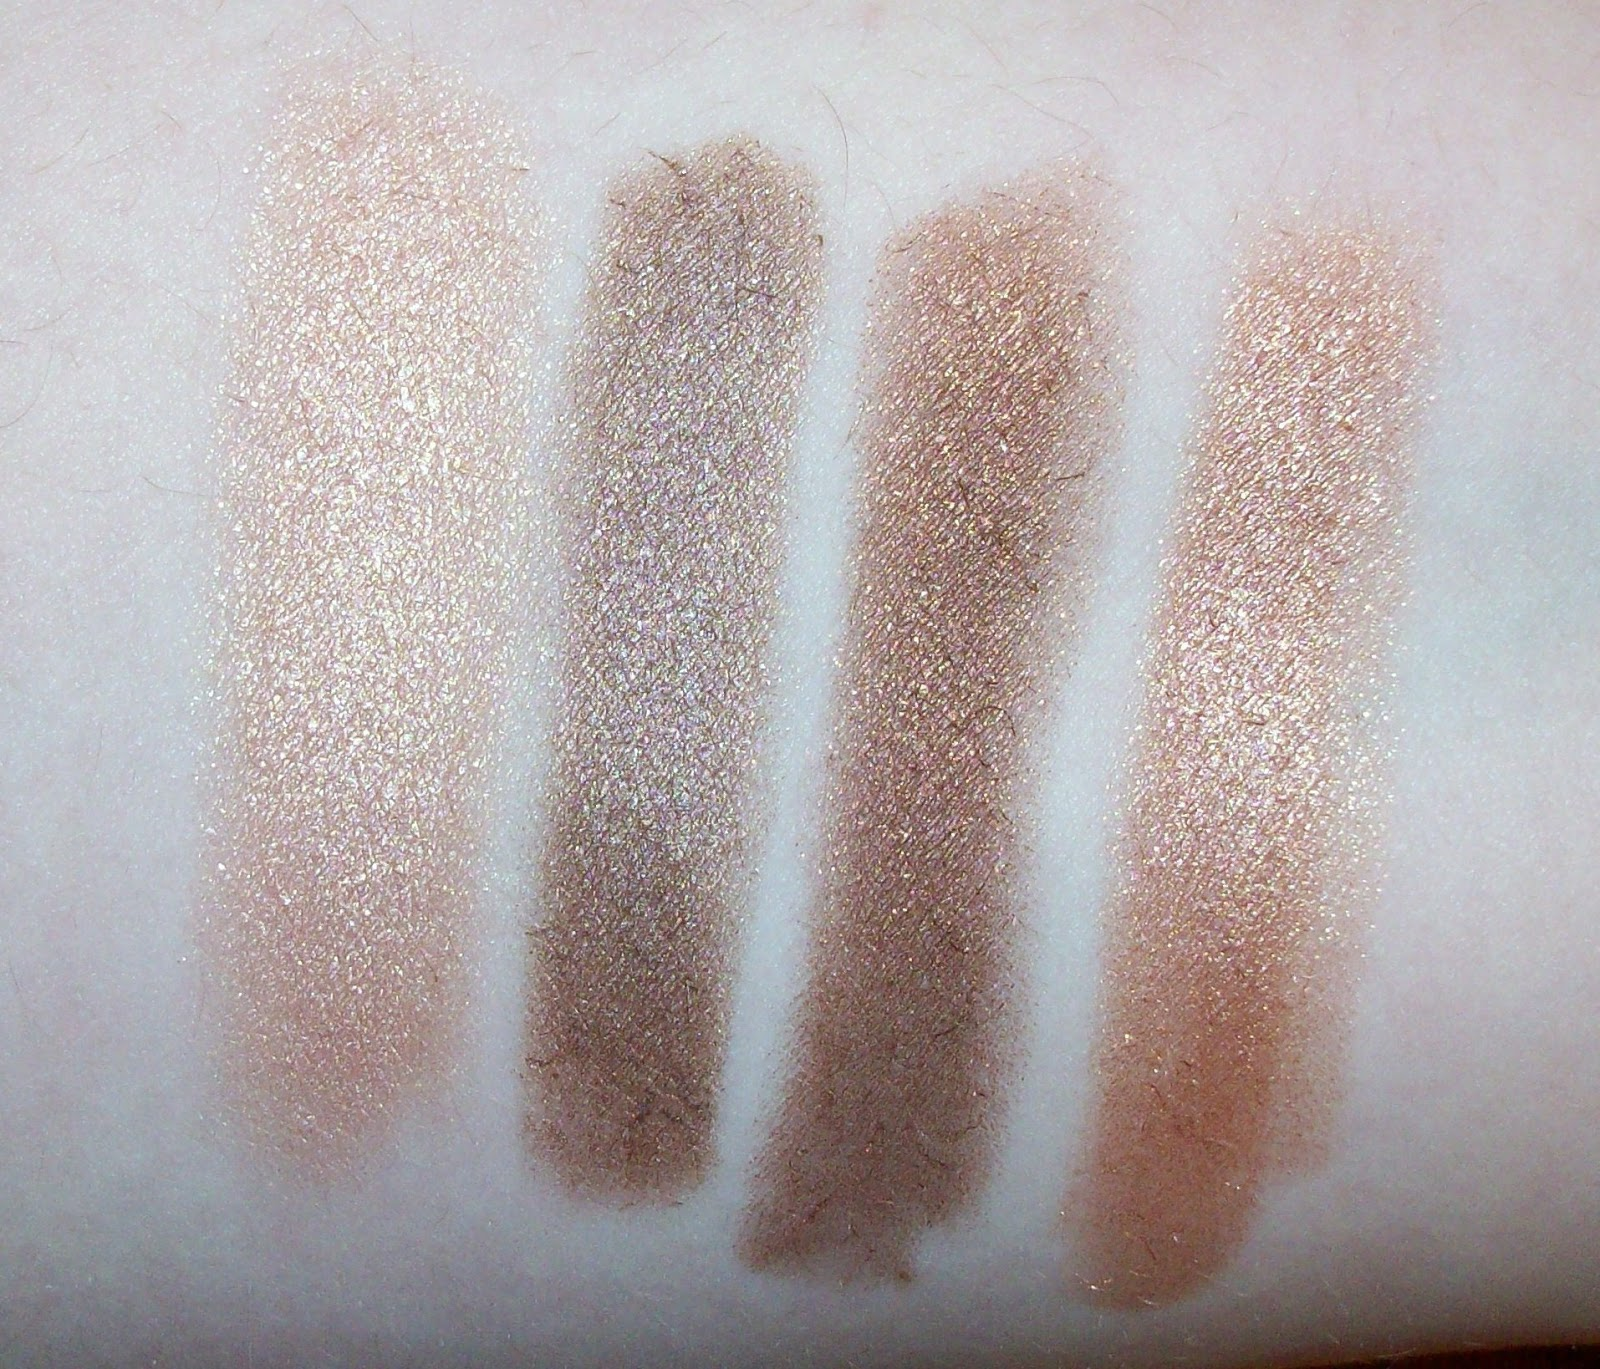 Chubby Stick Shadow Tint For Eyes by Clinique #18